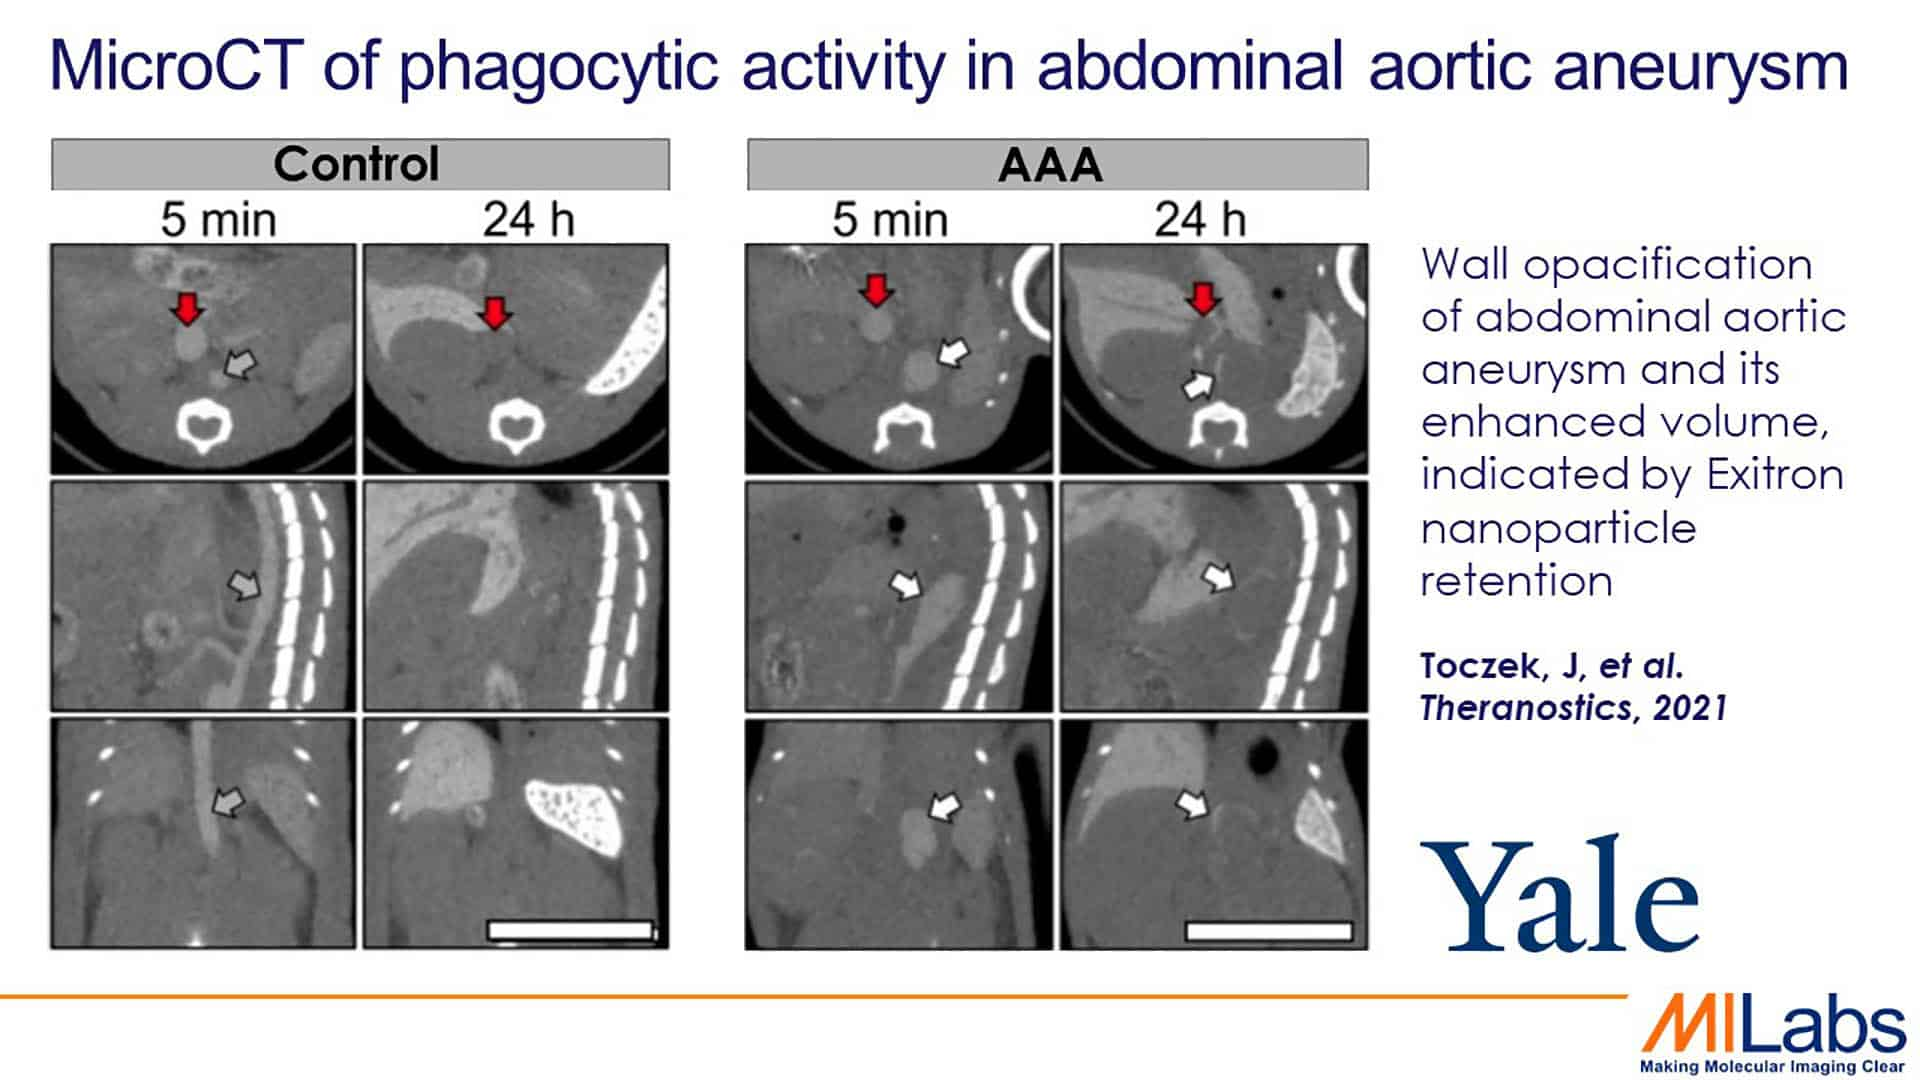 microCT phagocystic activity in abdominal aortic aneurism